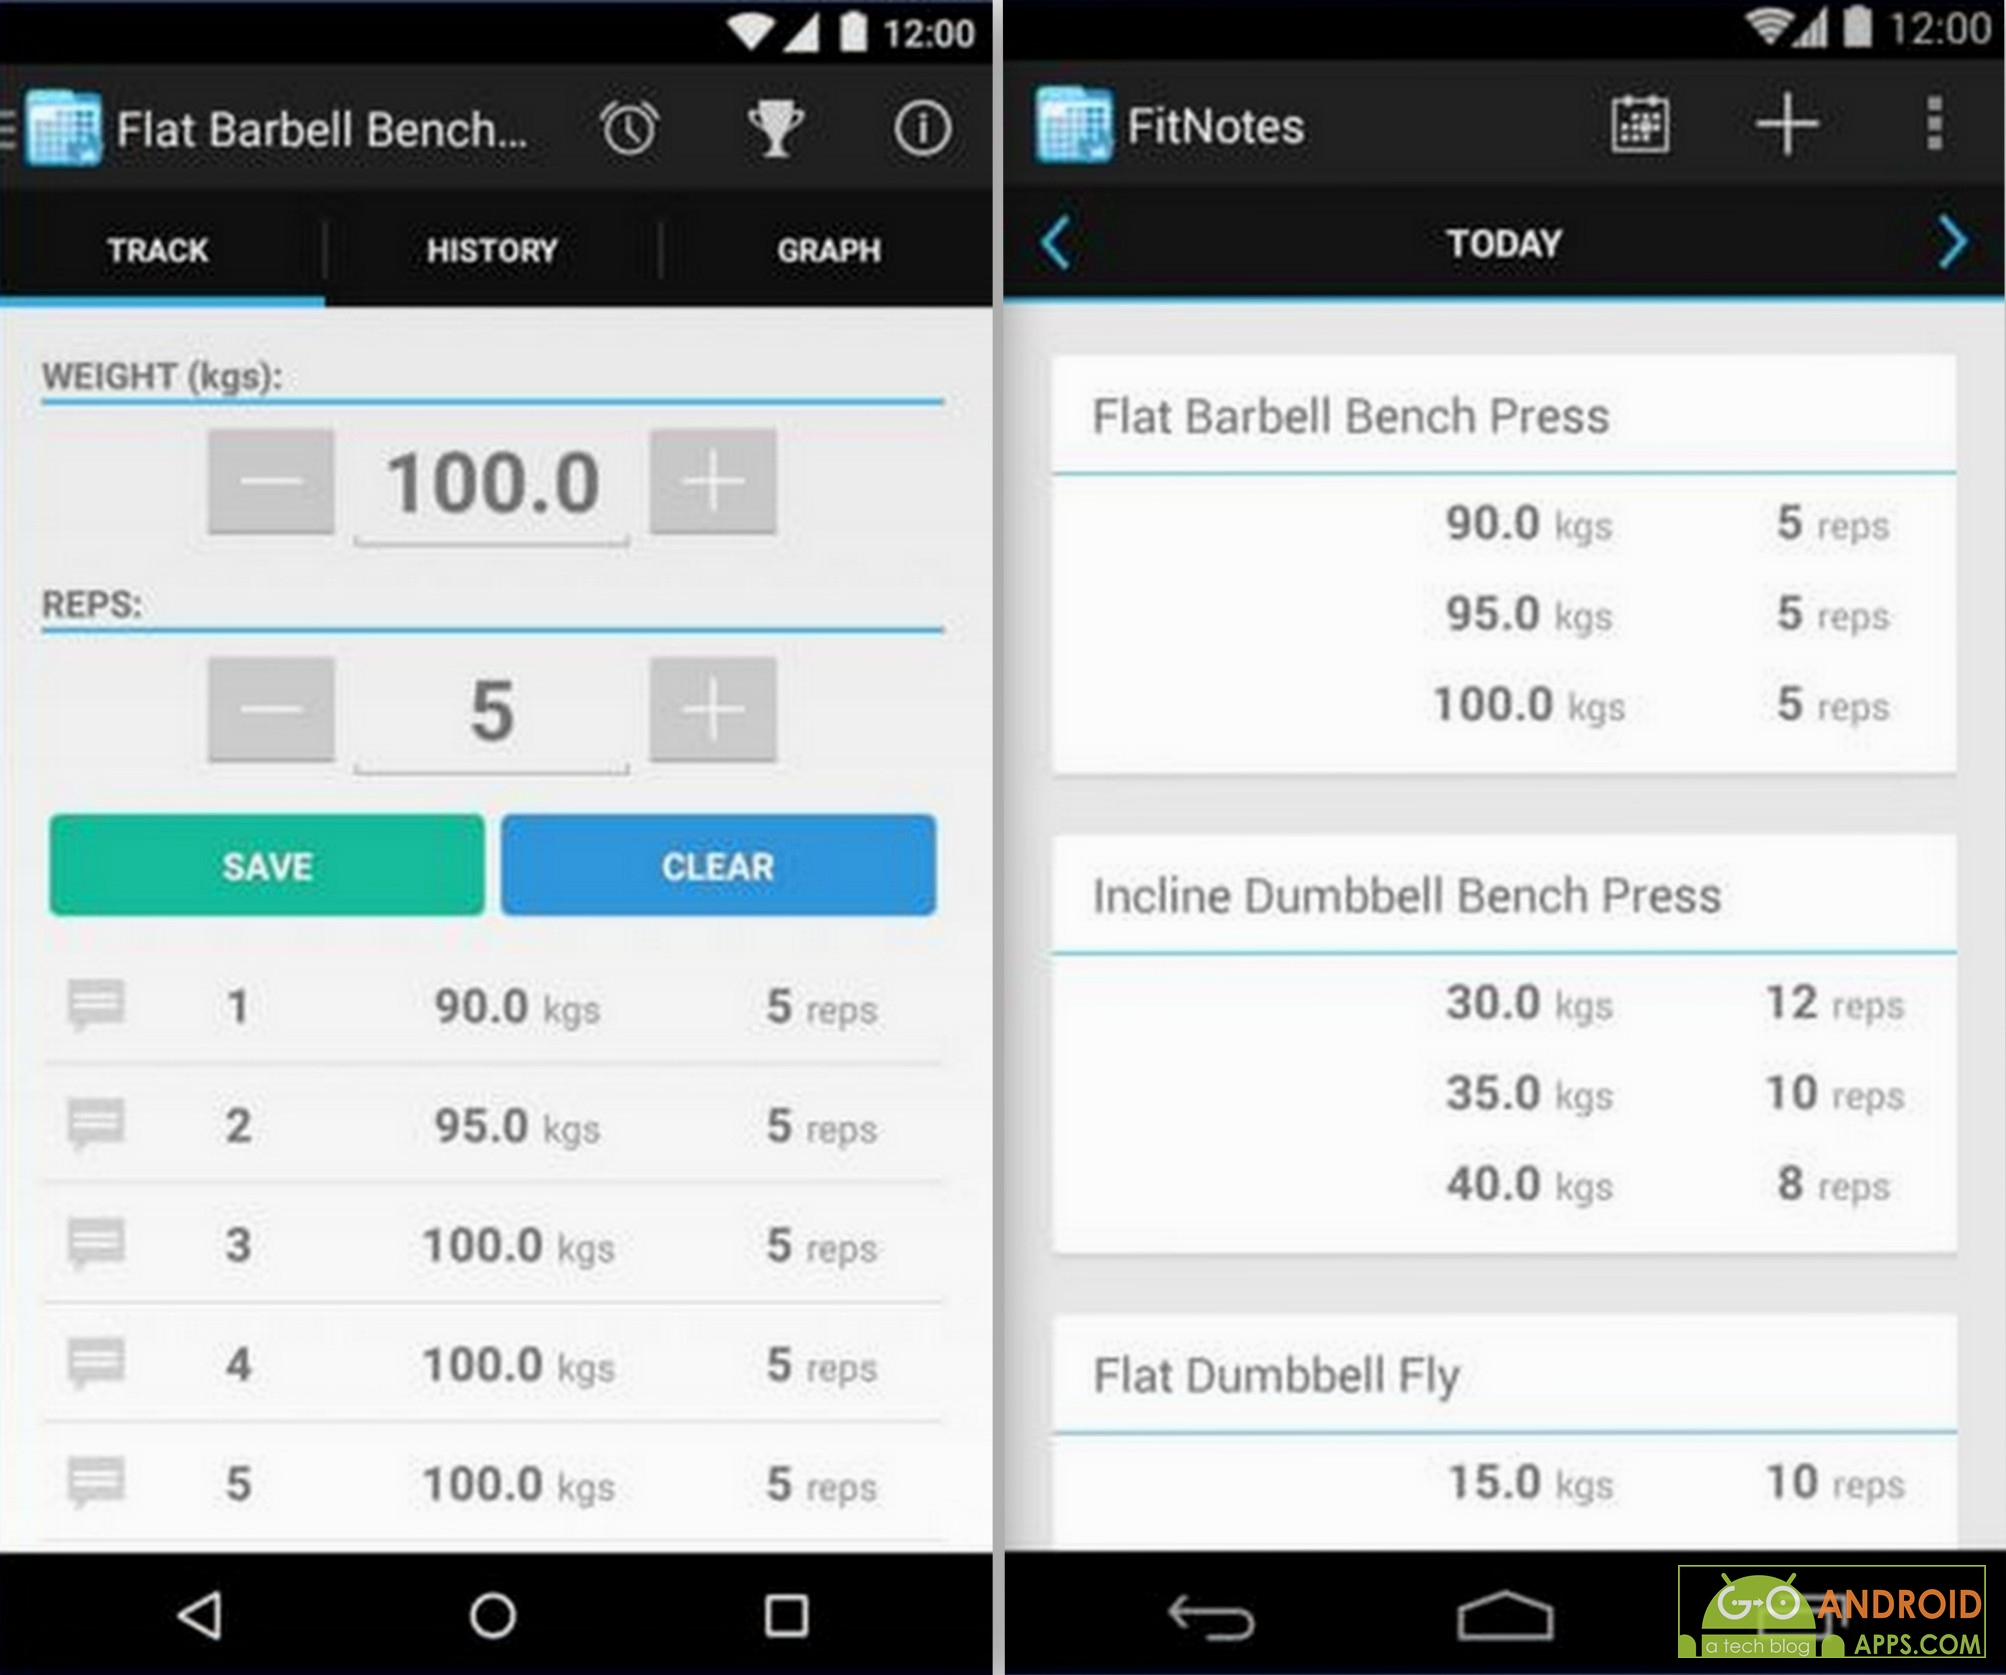 Workout Calendar App : The best fitness and health tracking apps for android go